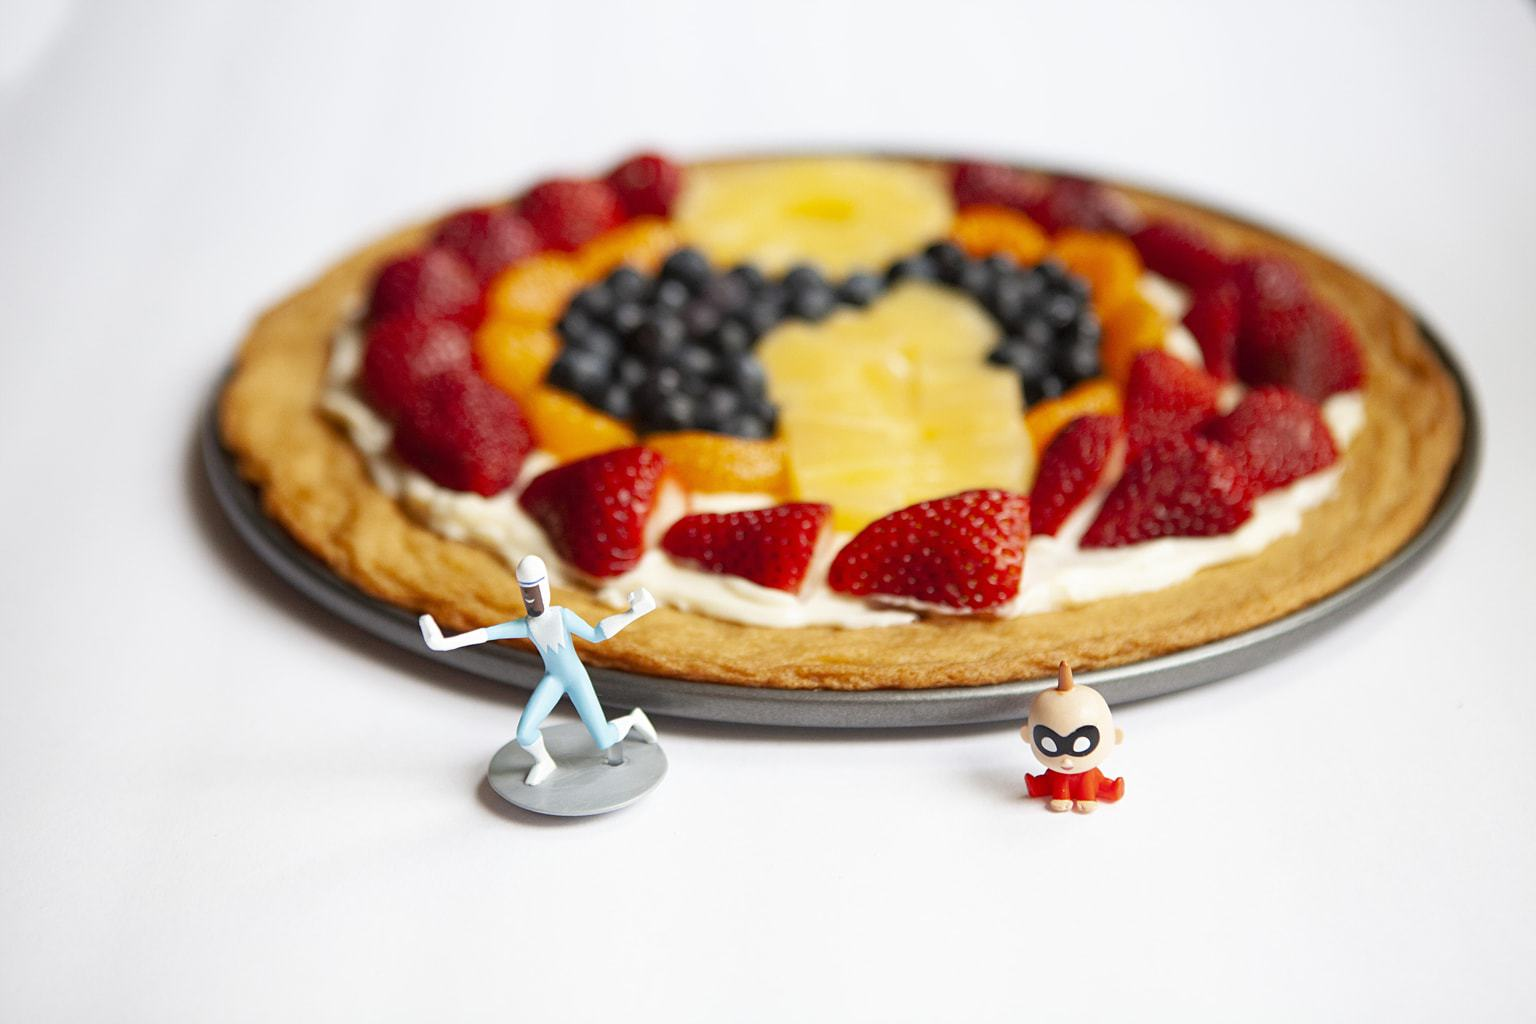 Sugar cookie Fruit Pizza Inspired by Incredibles Movie